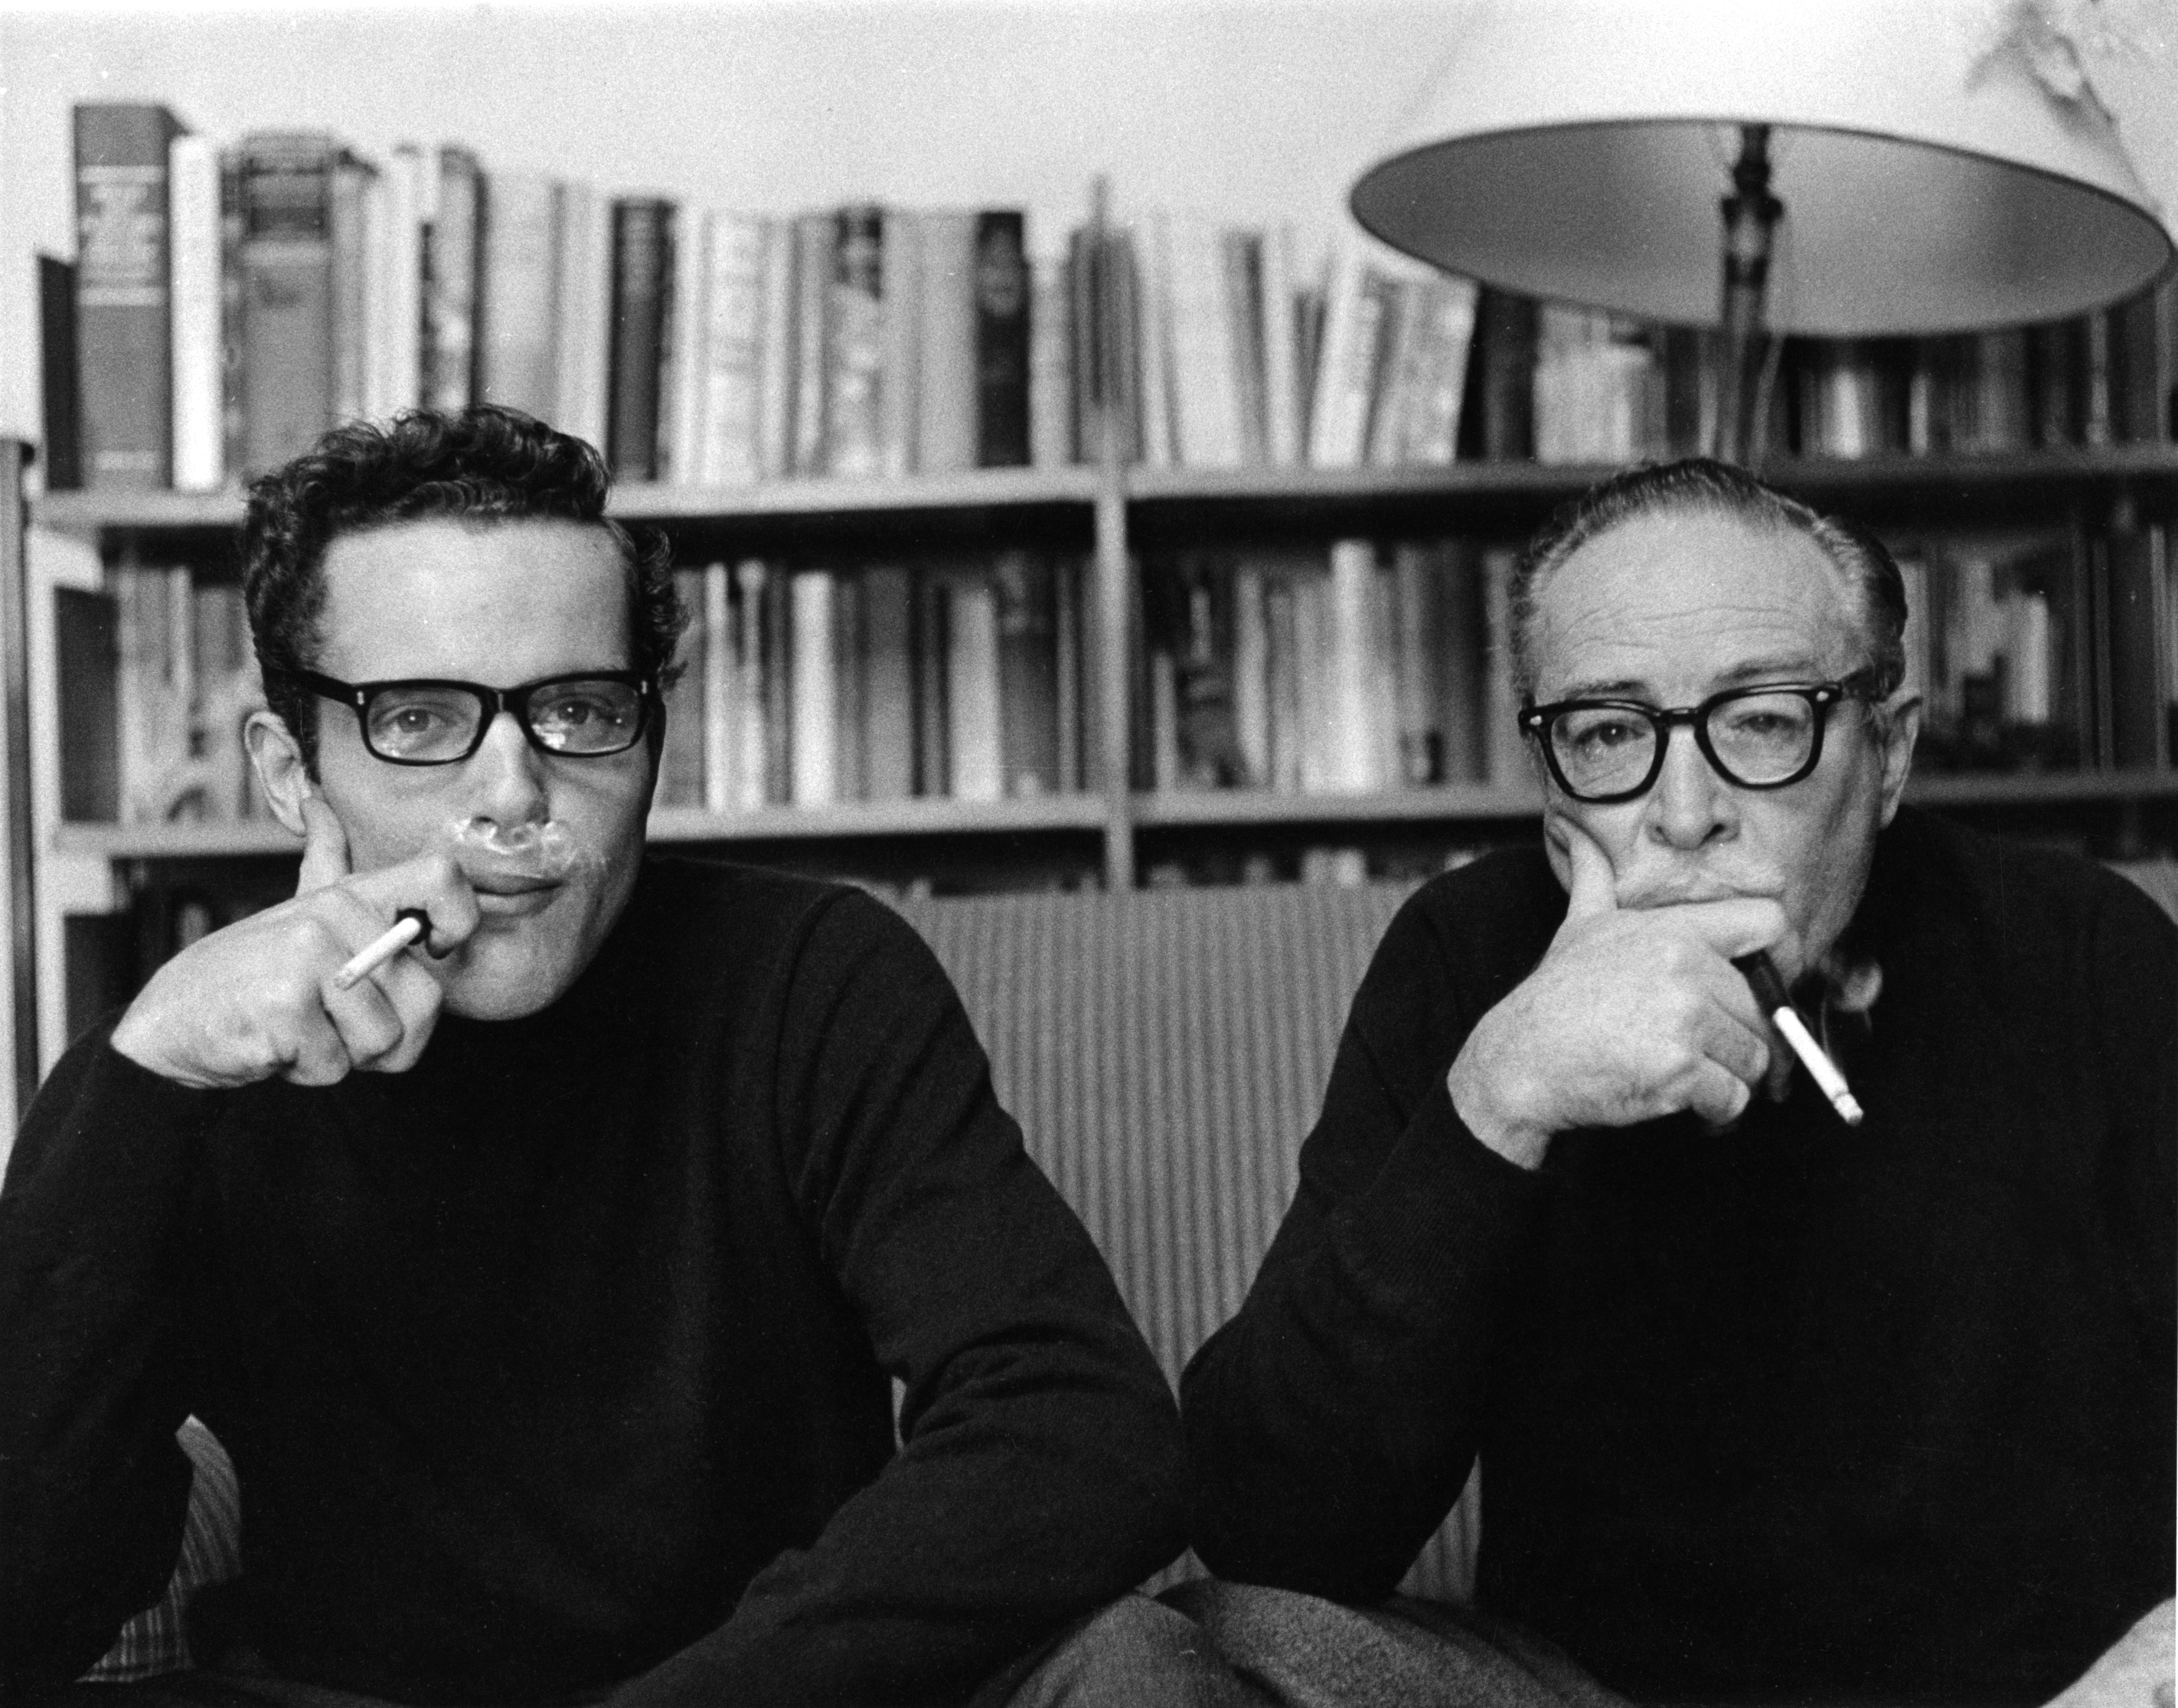 Caption: Christopher and Dalton Trumbo, Credit: Focus on the Masters Archive, Christopher Trumbo Papers